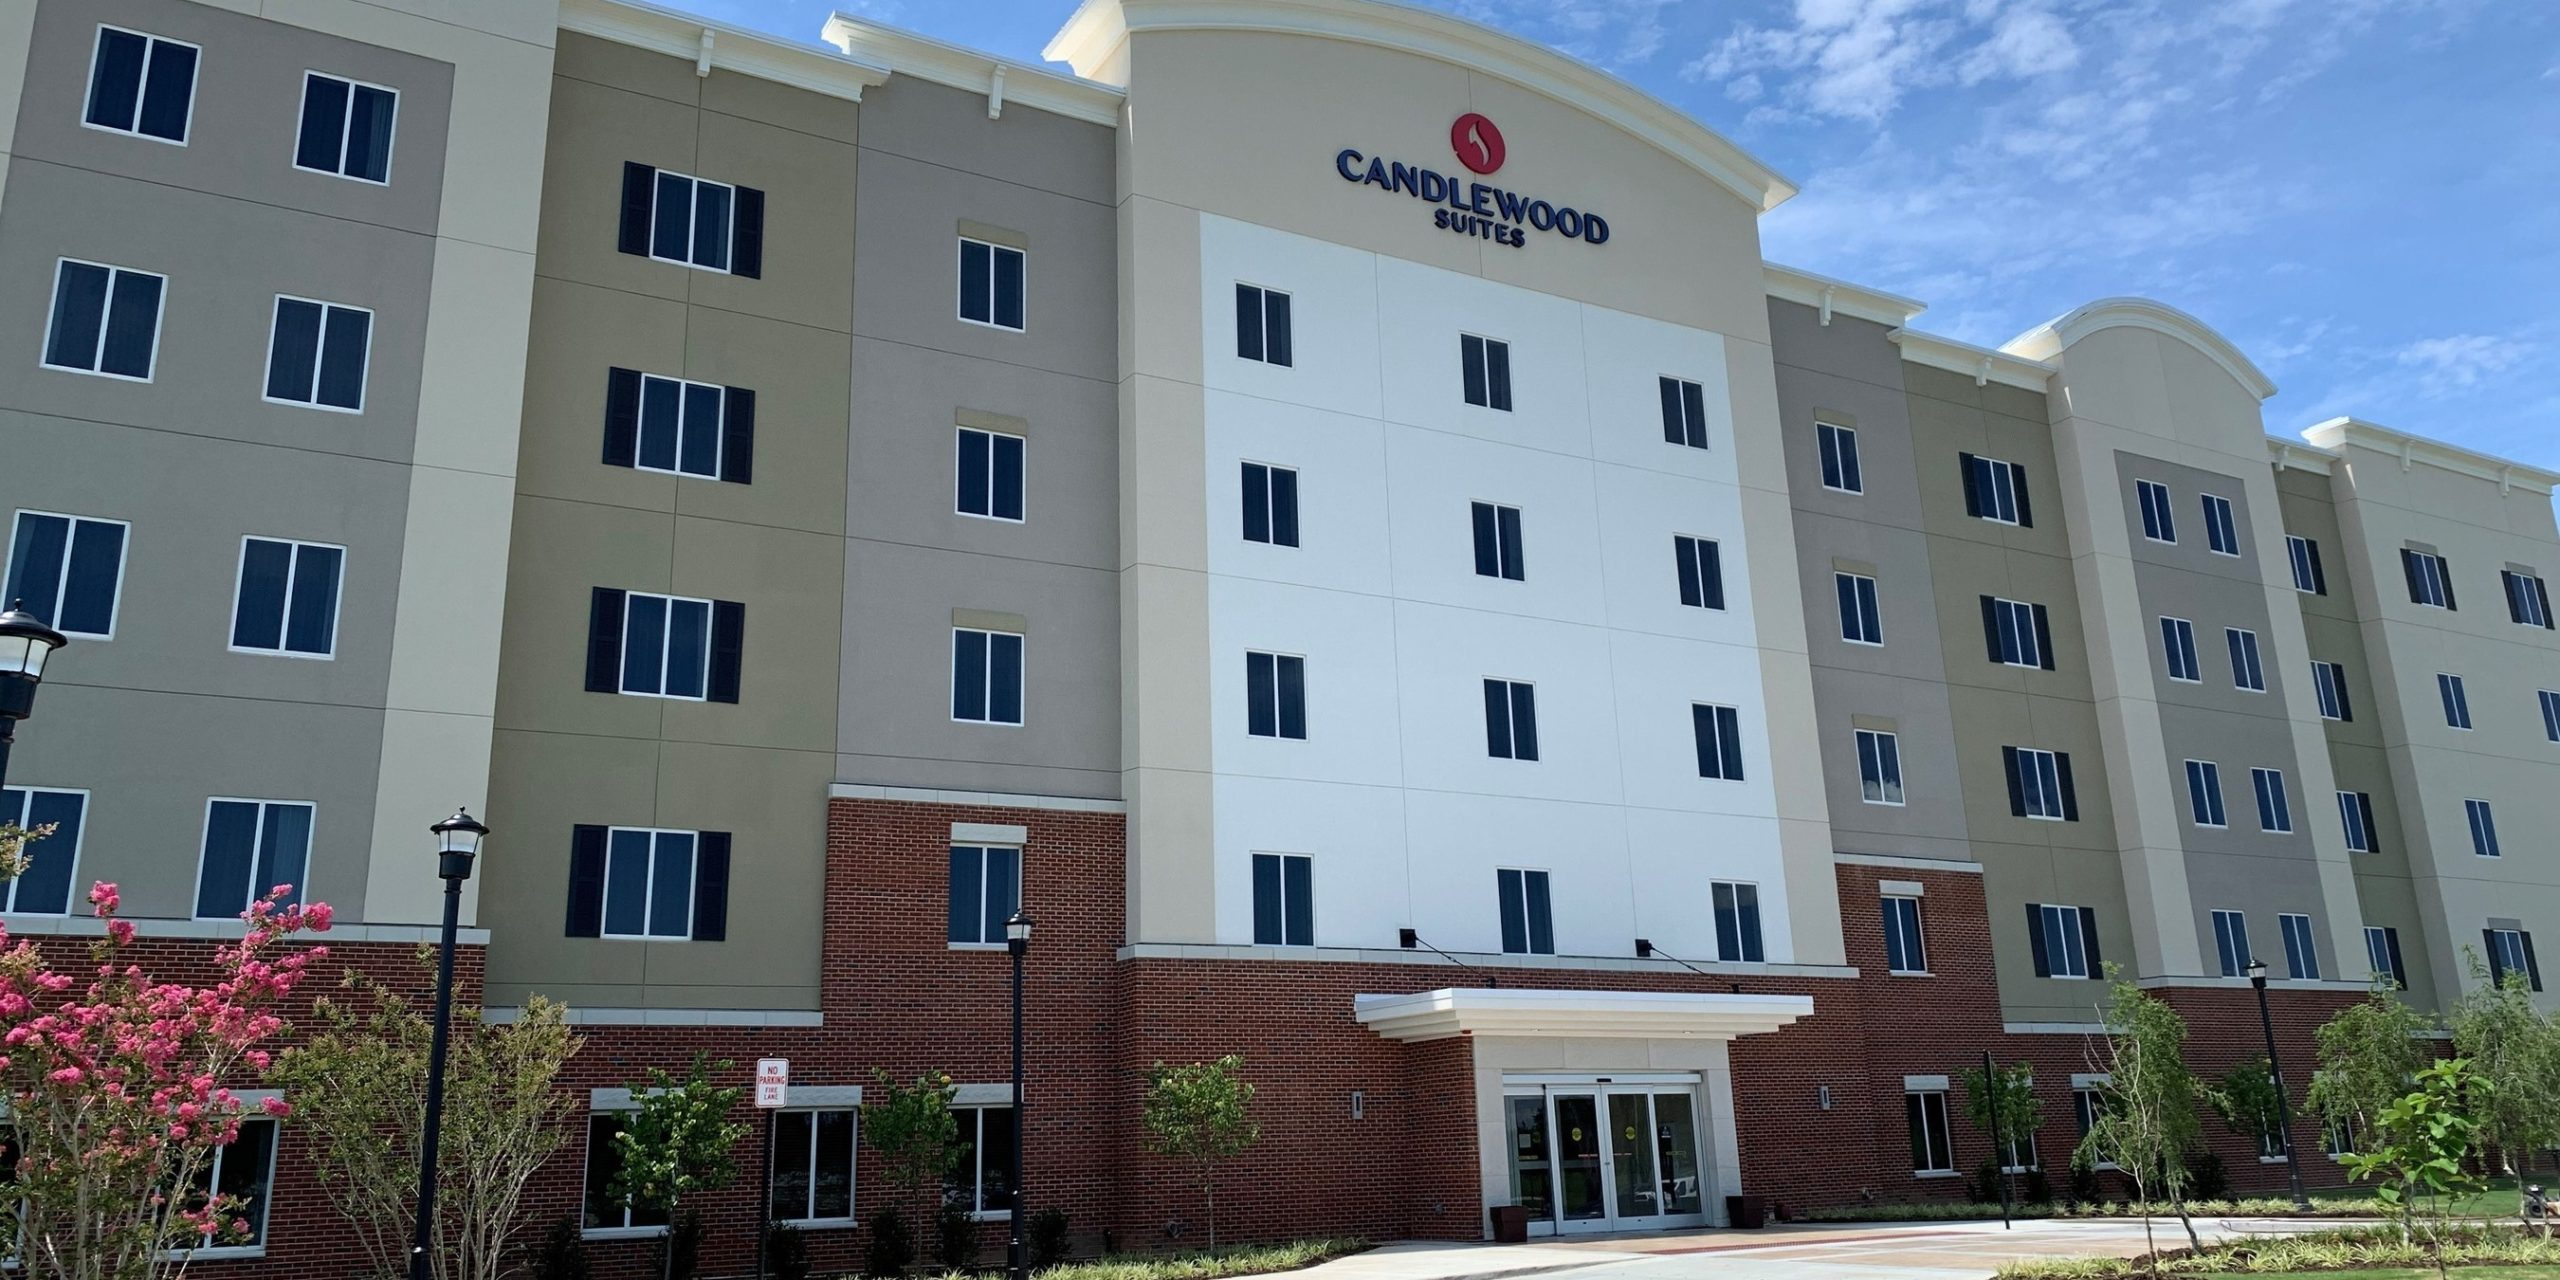 Largest ever Candlewood Suites hotel opens in Georgia